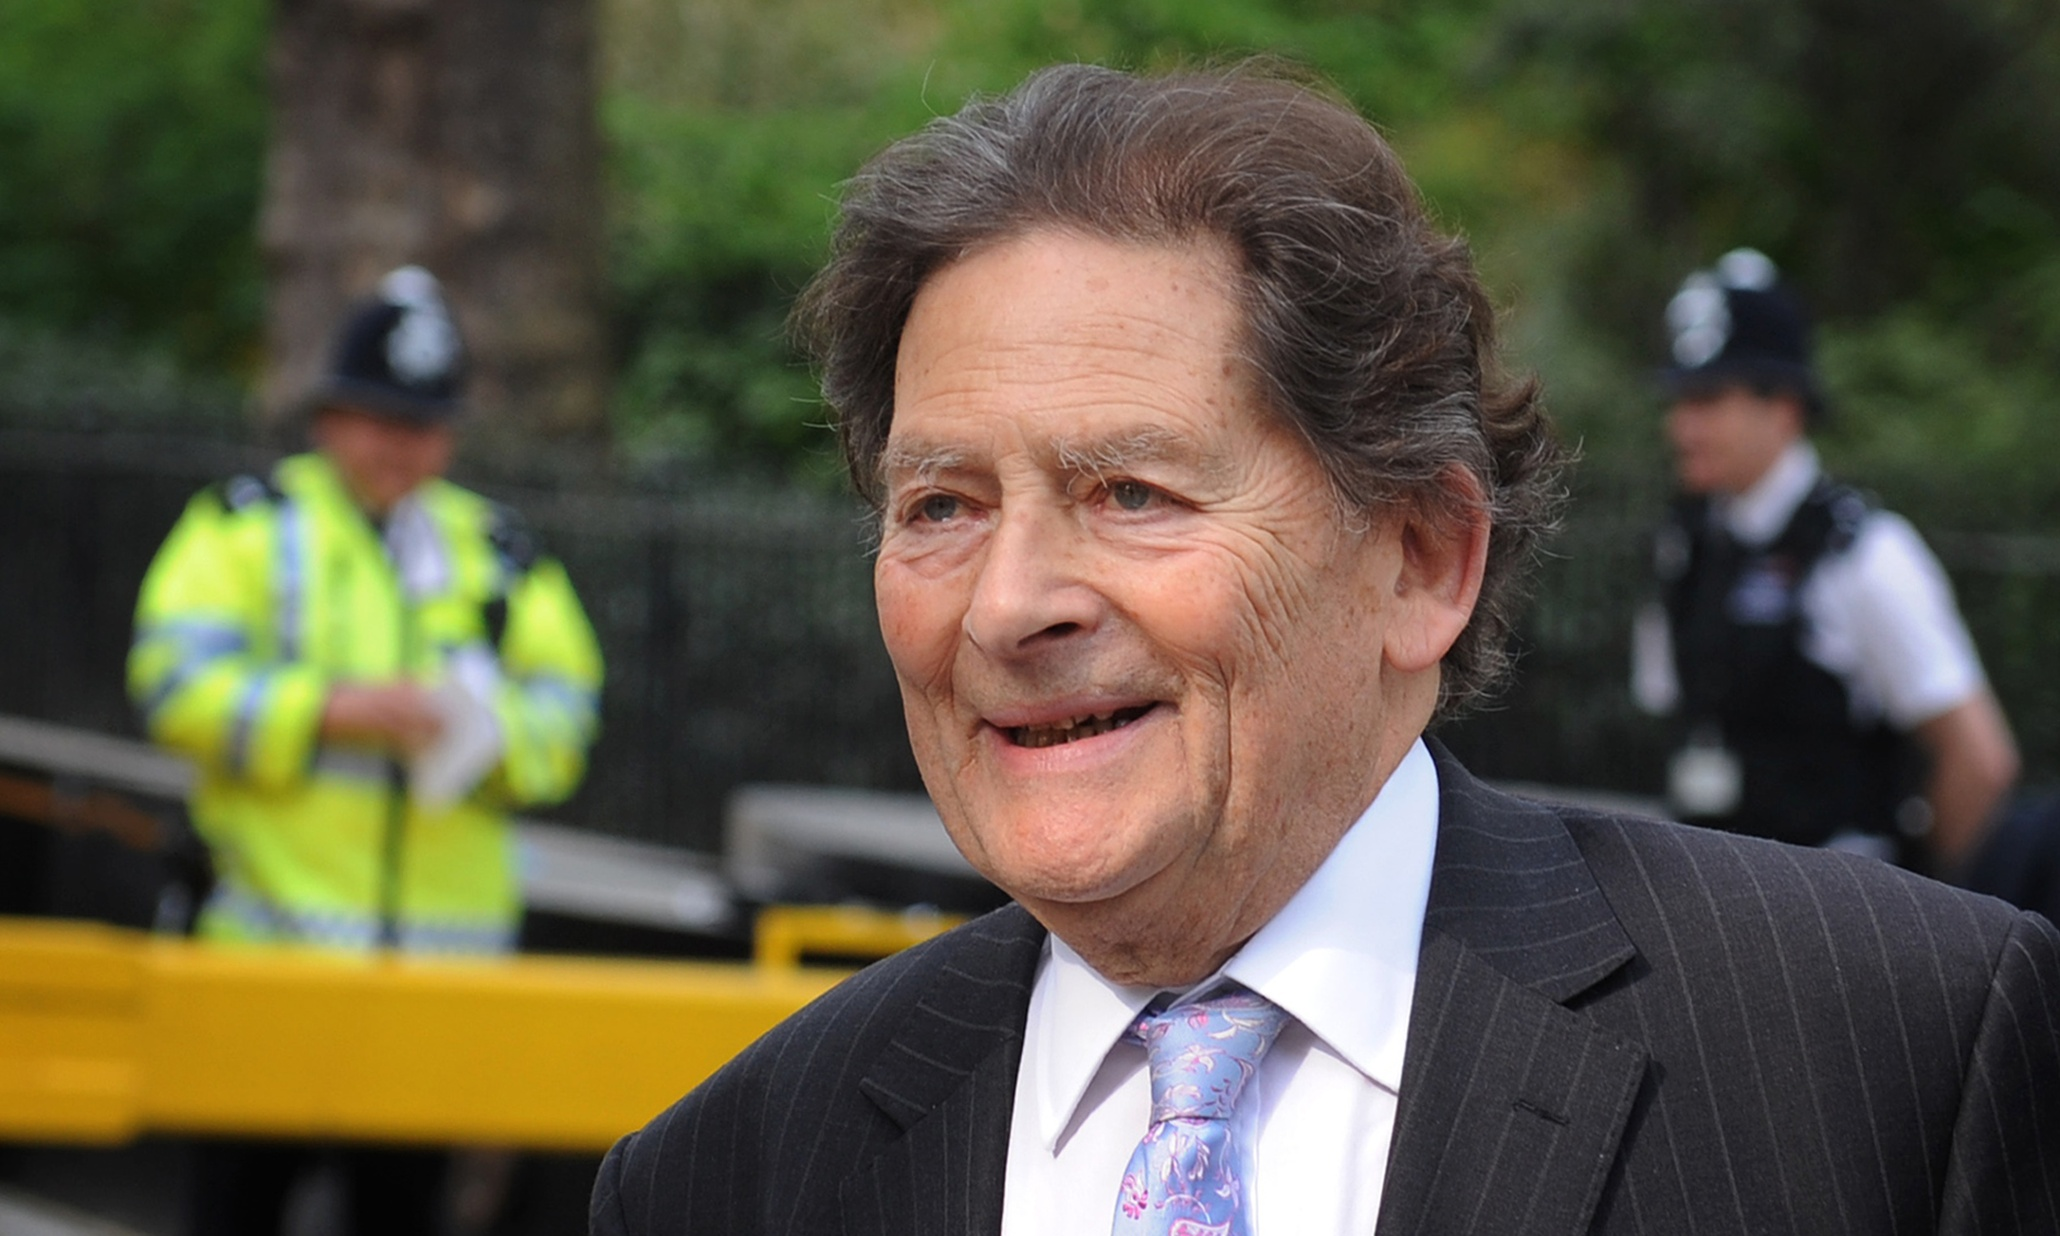 Nigel Lawson suggests he's not a skeptic, proceeds to deny global warming | Dana Nuccitelli